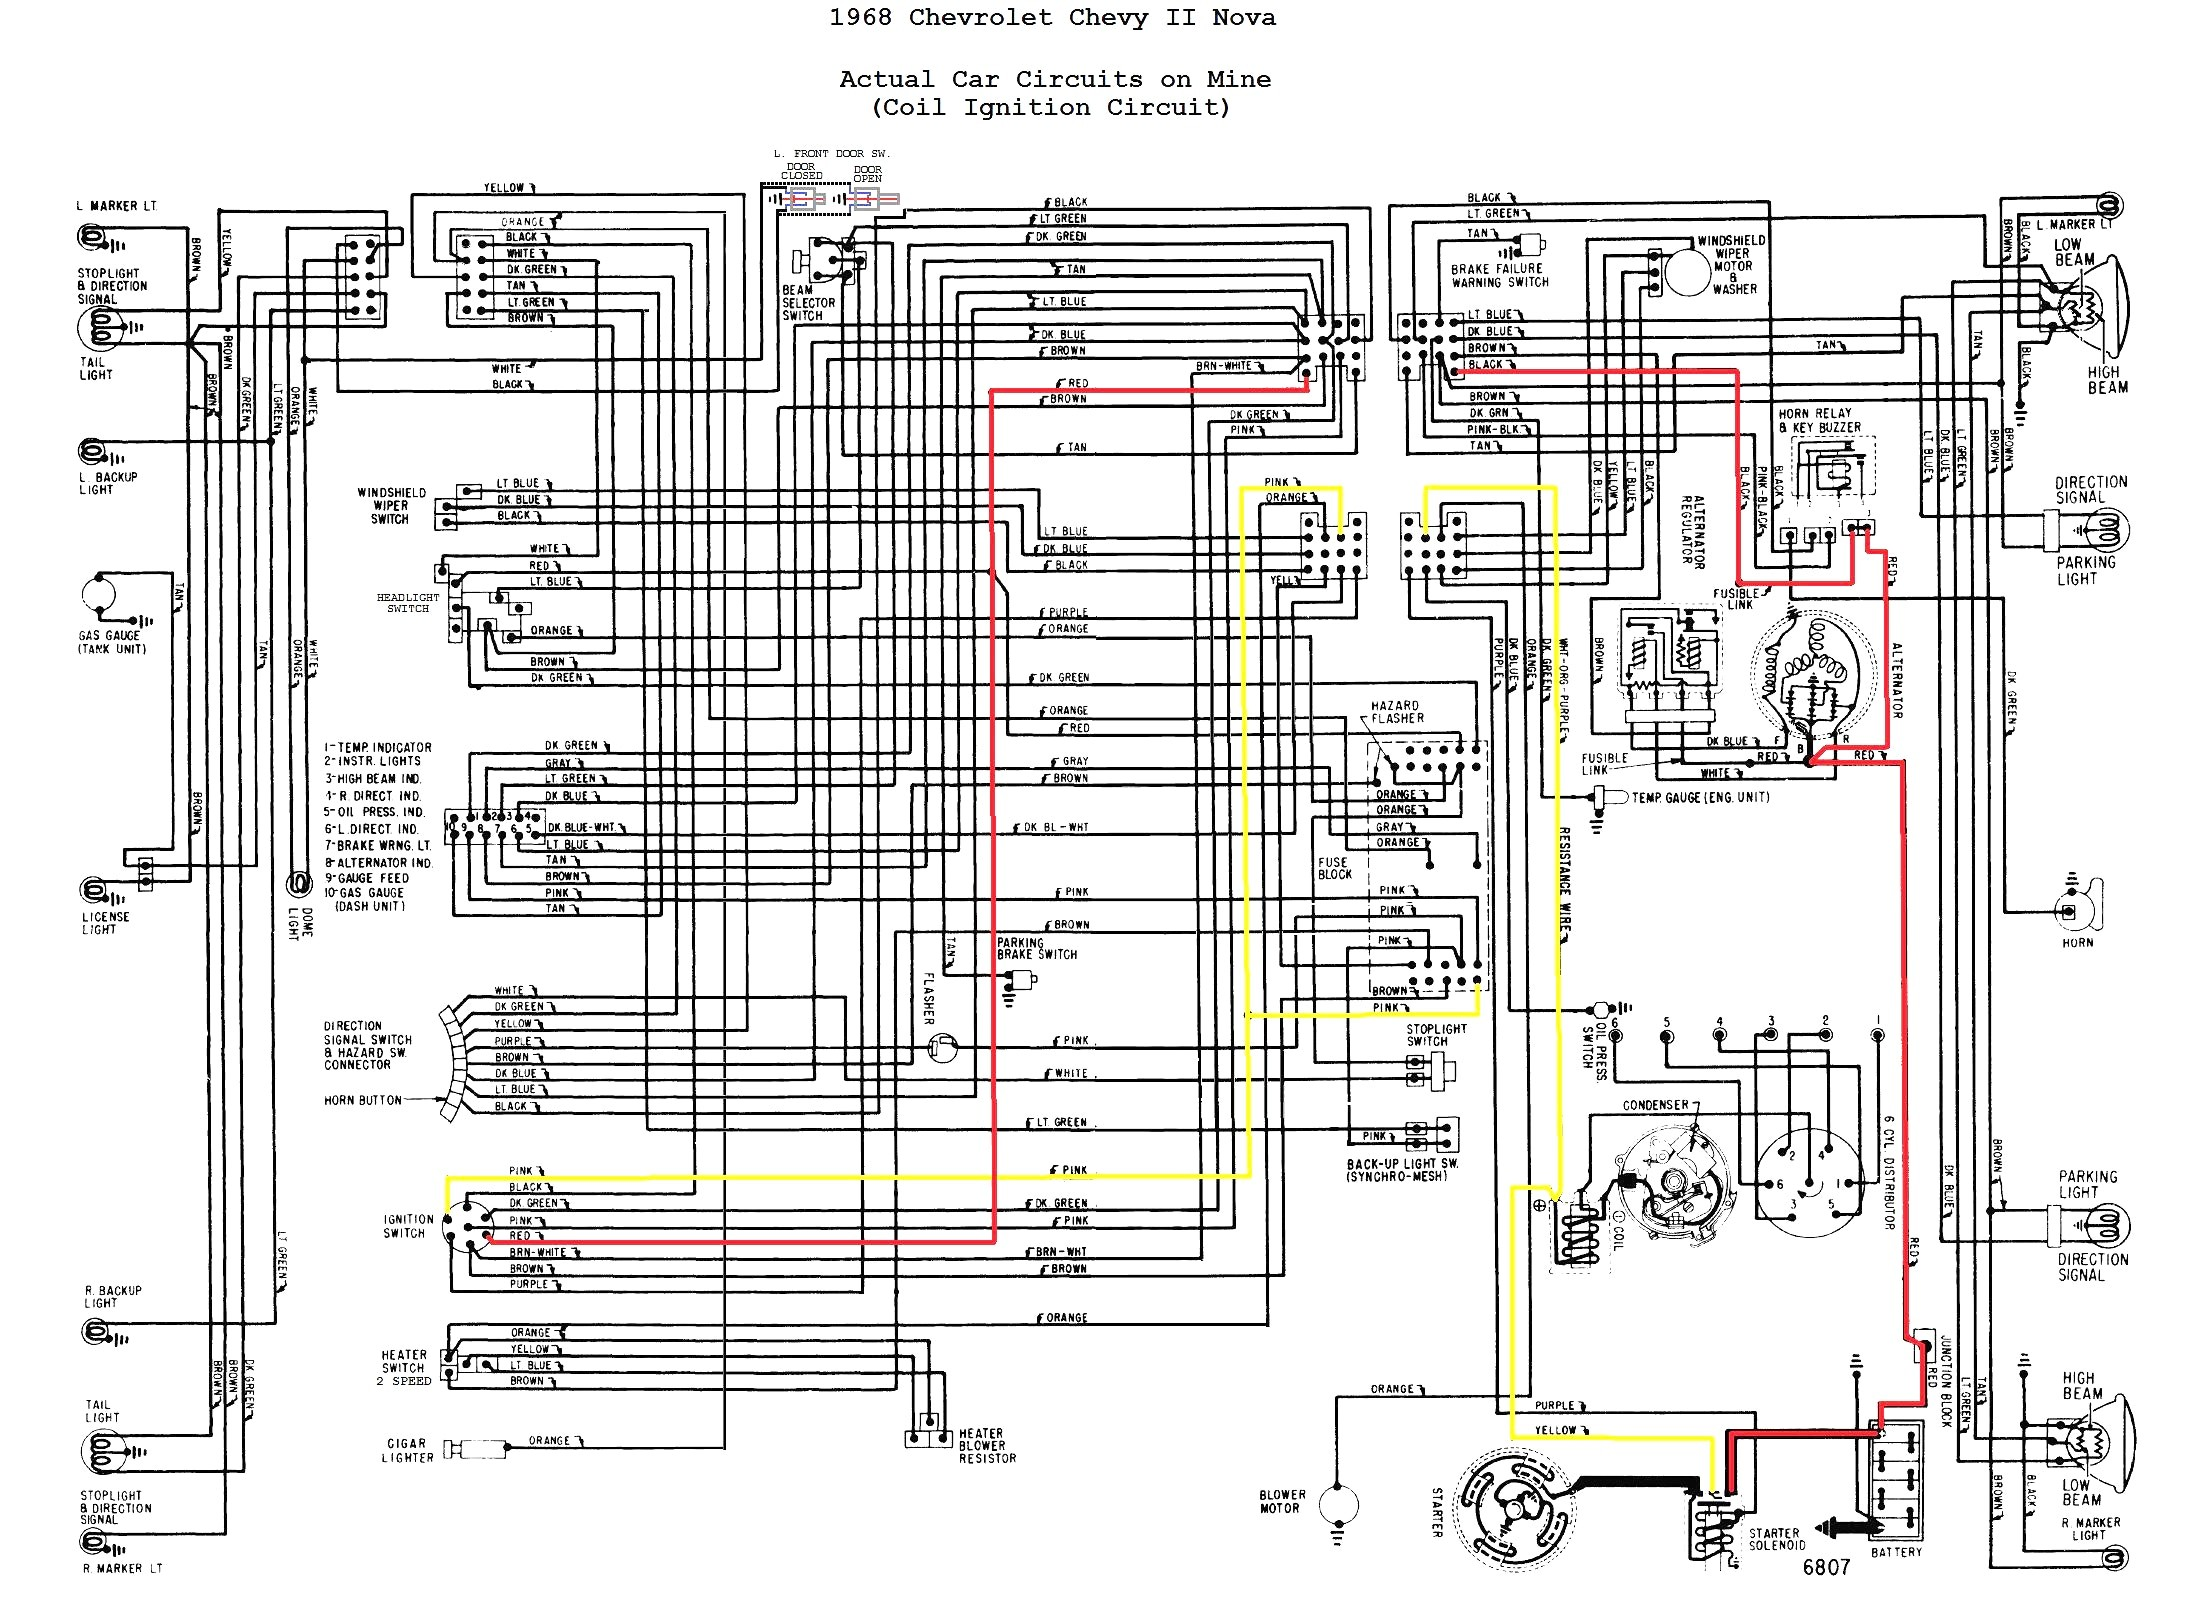 WRG-4948] 68 Gm Steering Column Wiring Diagram